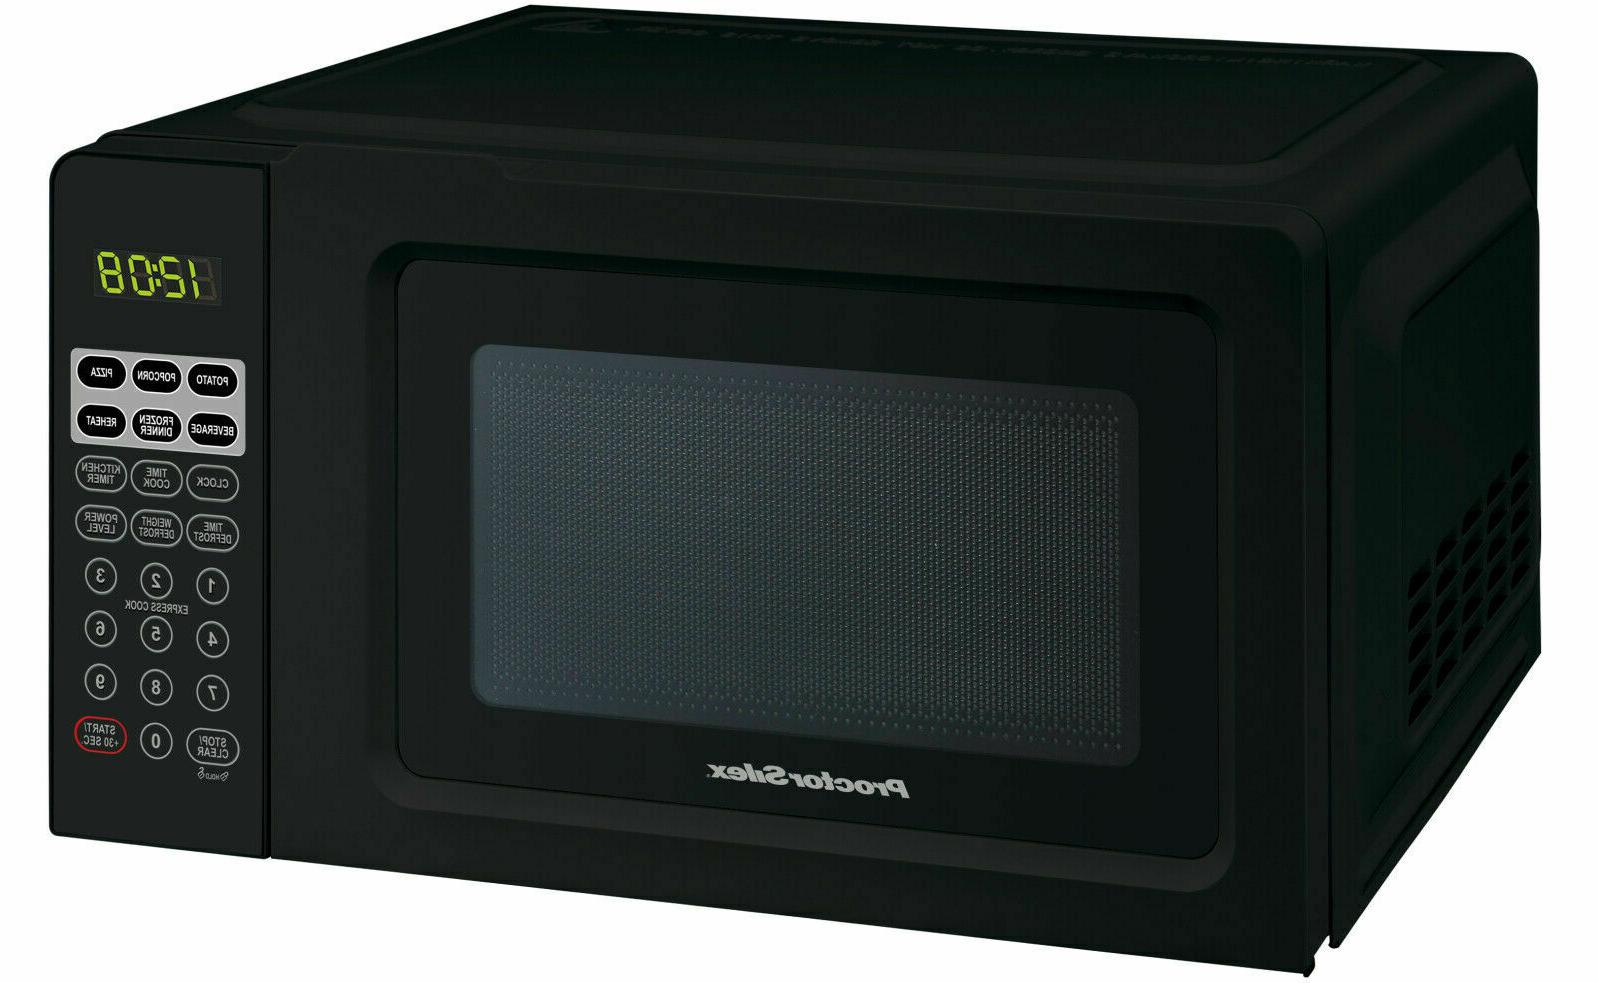 Proctor Silex 0.7 Black Small Kitchen